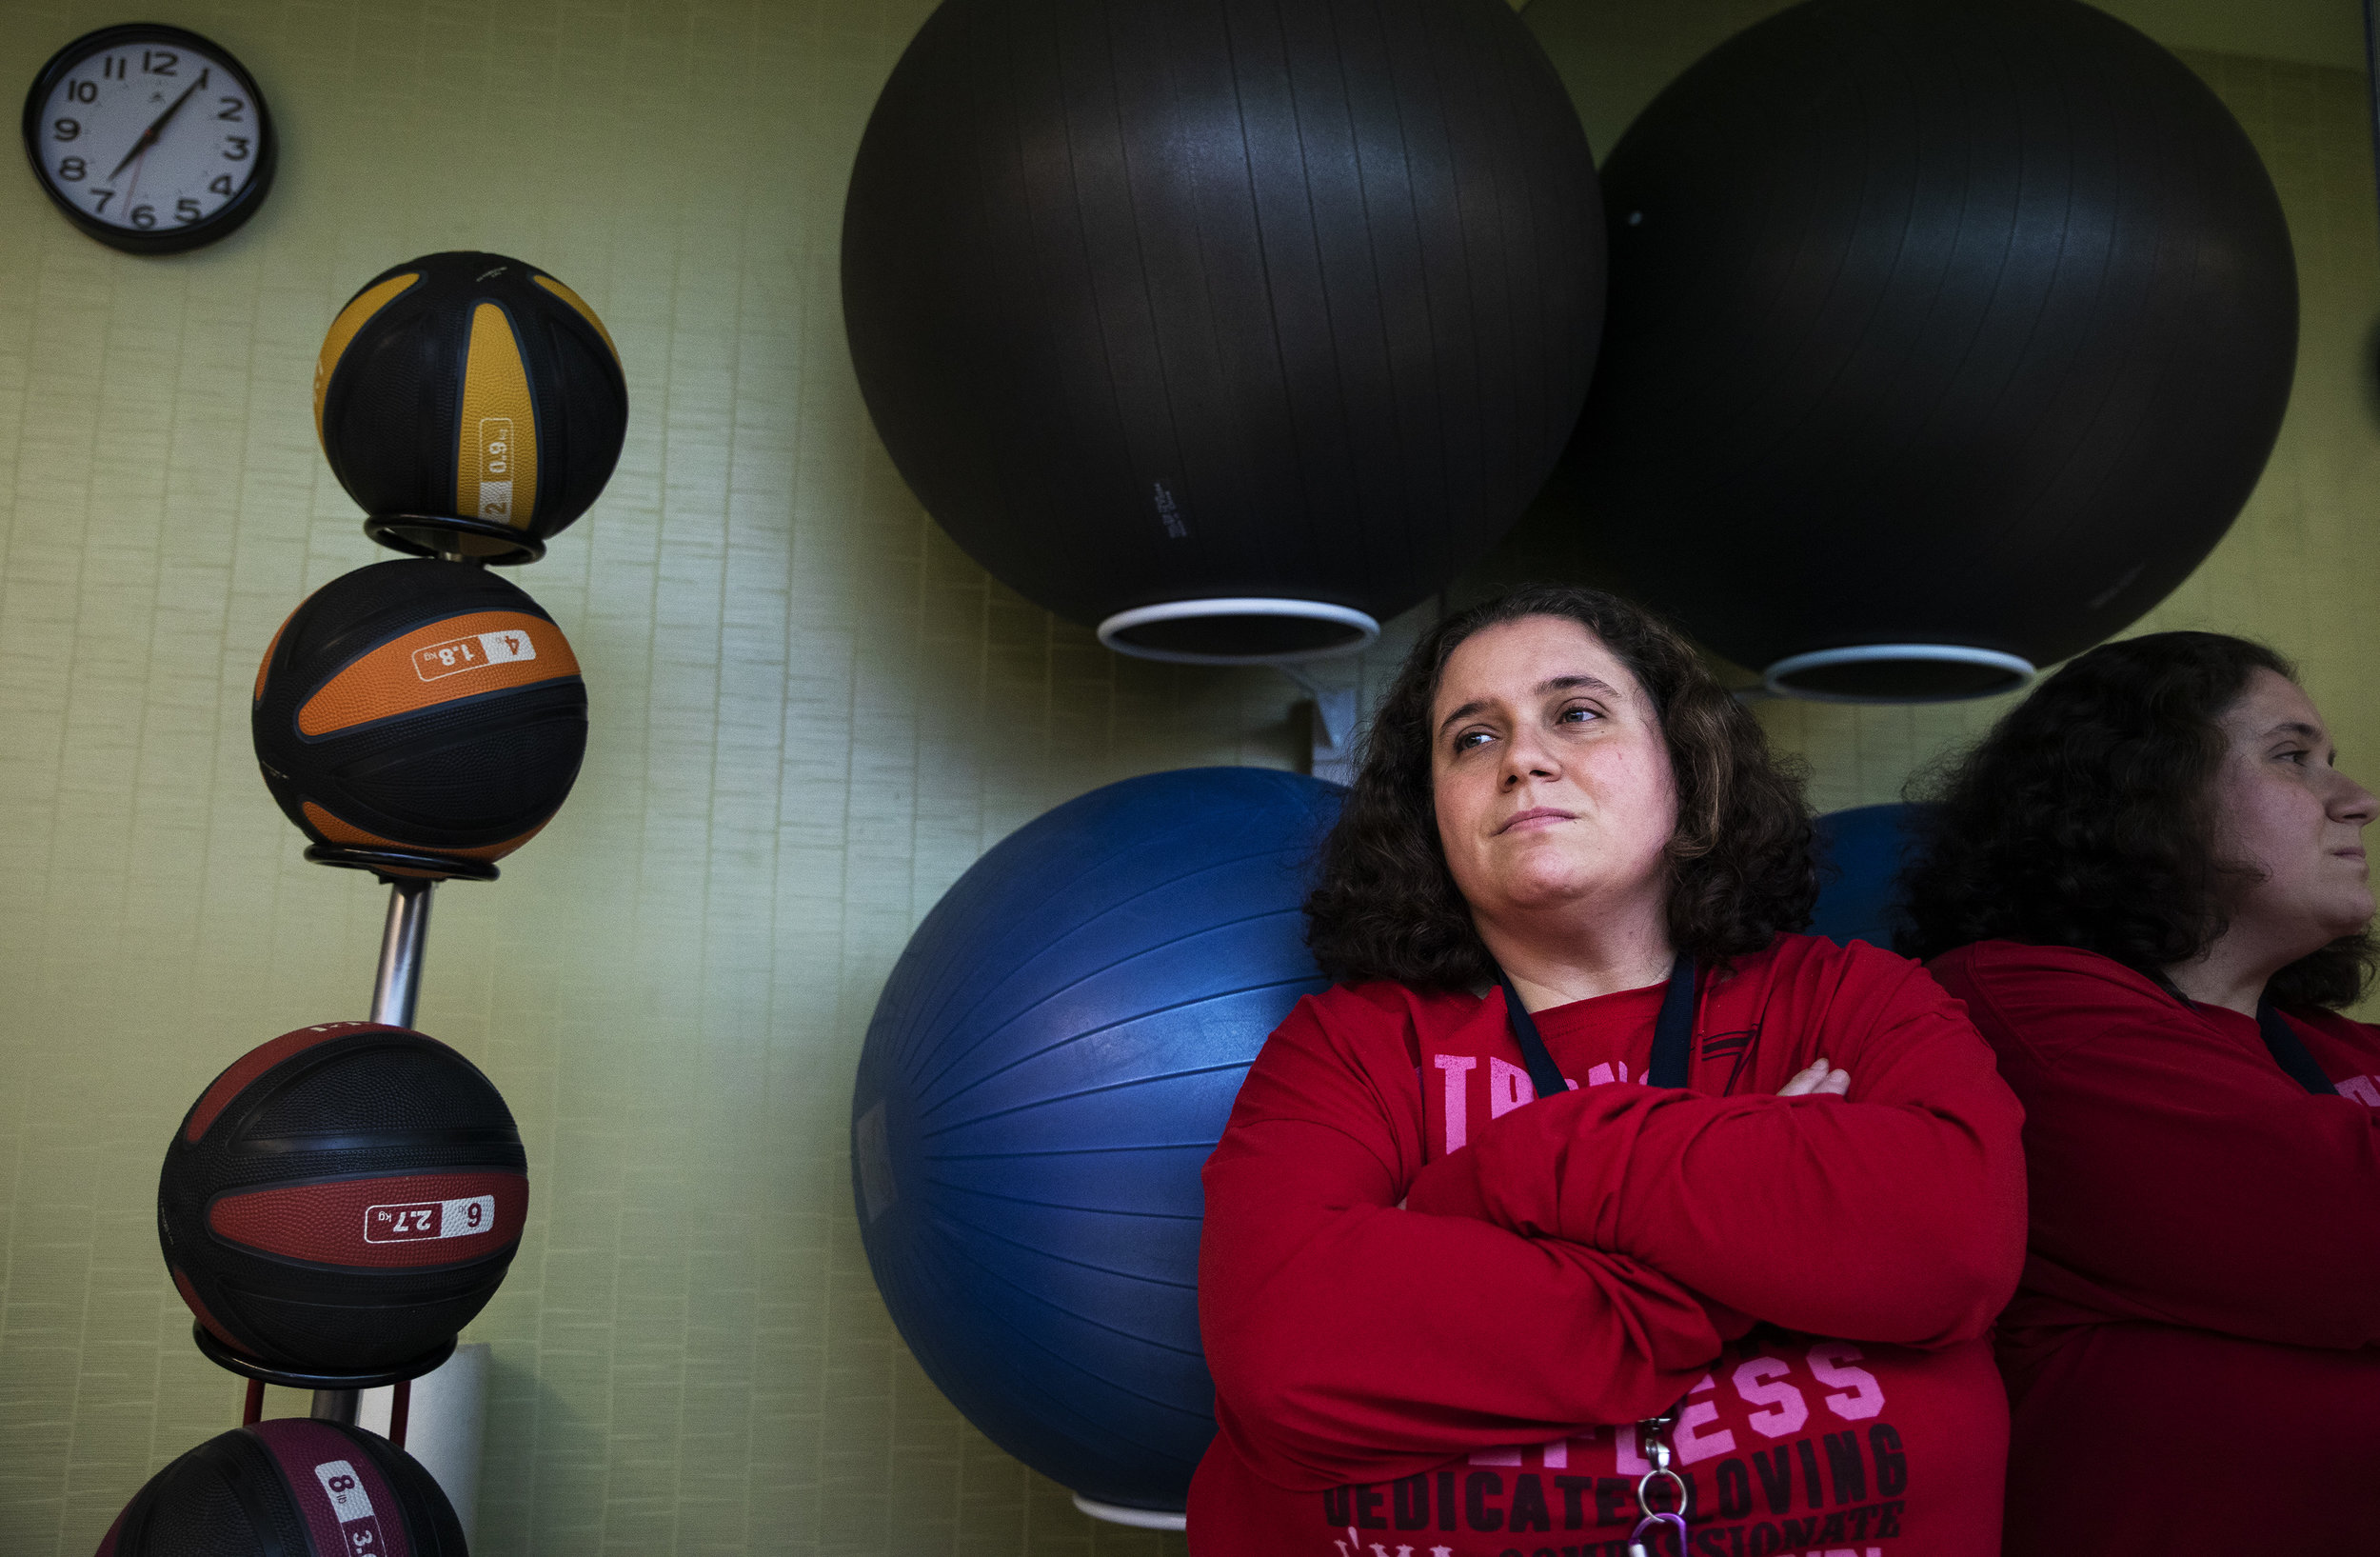 Jessie Fire poses for a portrait in her apartment's gym. Jessie has hydrocephalus and has neurological issues, yet a home fitness training company managed to get her to spend $5000 for six months of training, completely taking advantage of her.